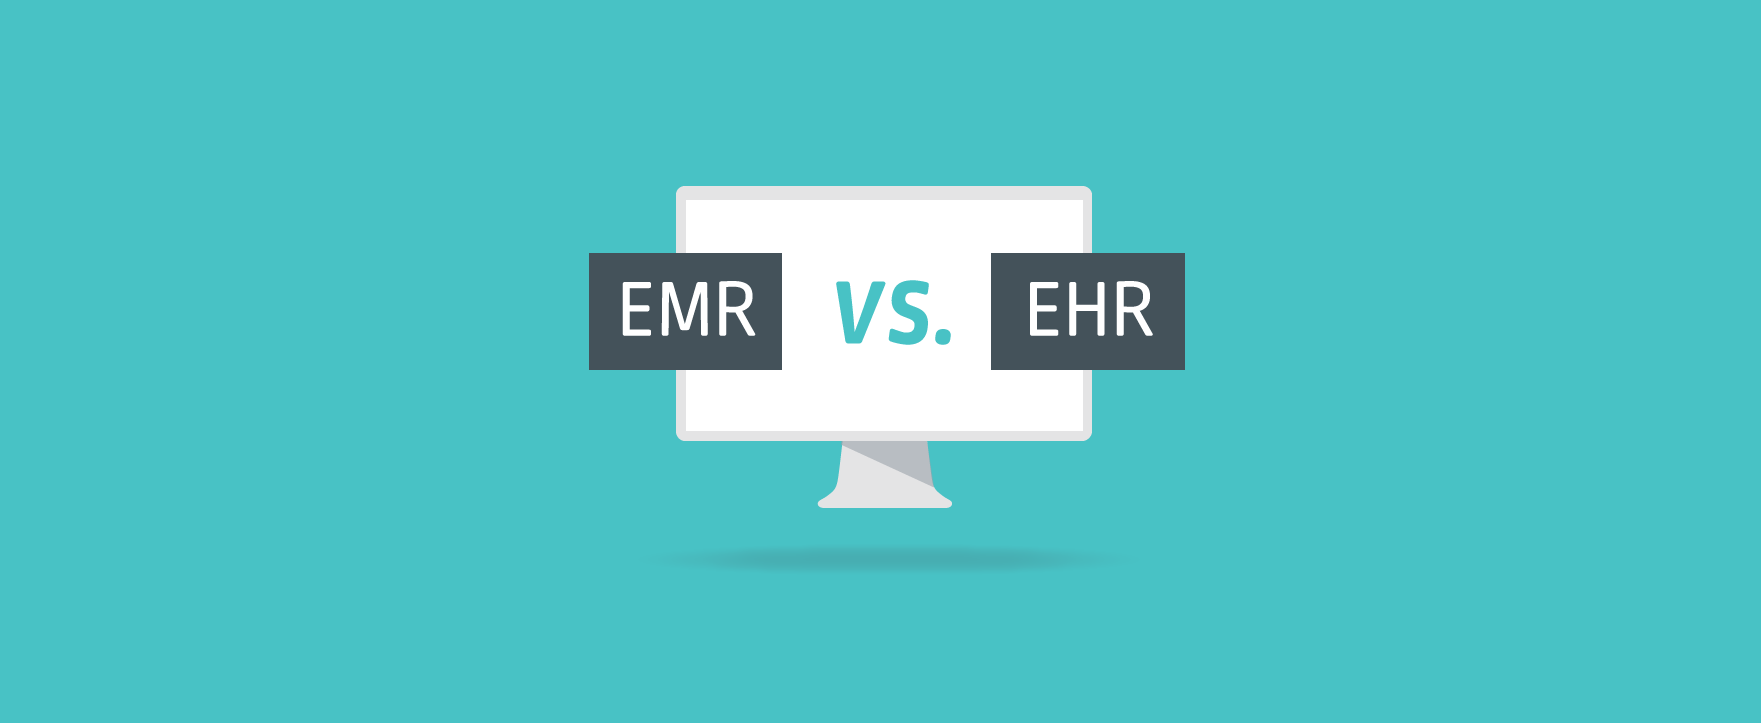 Pediatric EHR vs EMR